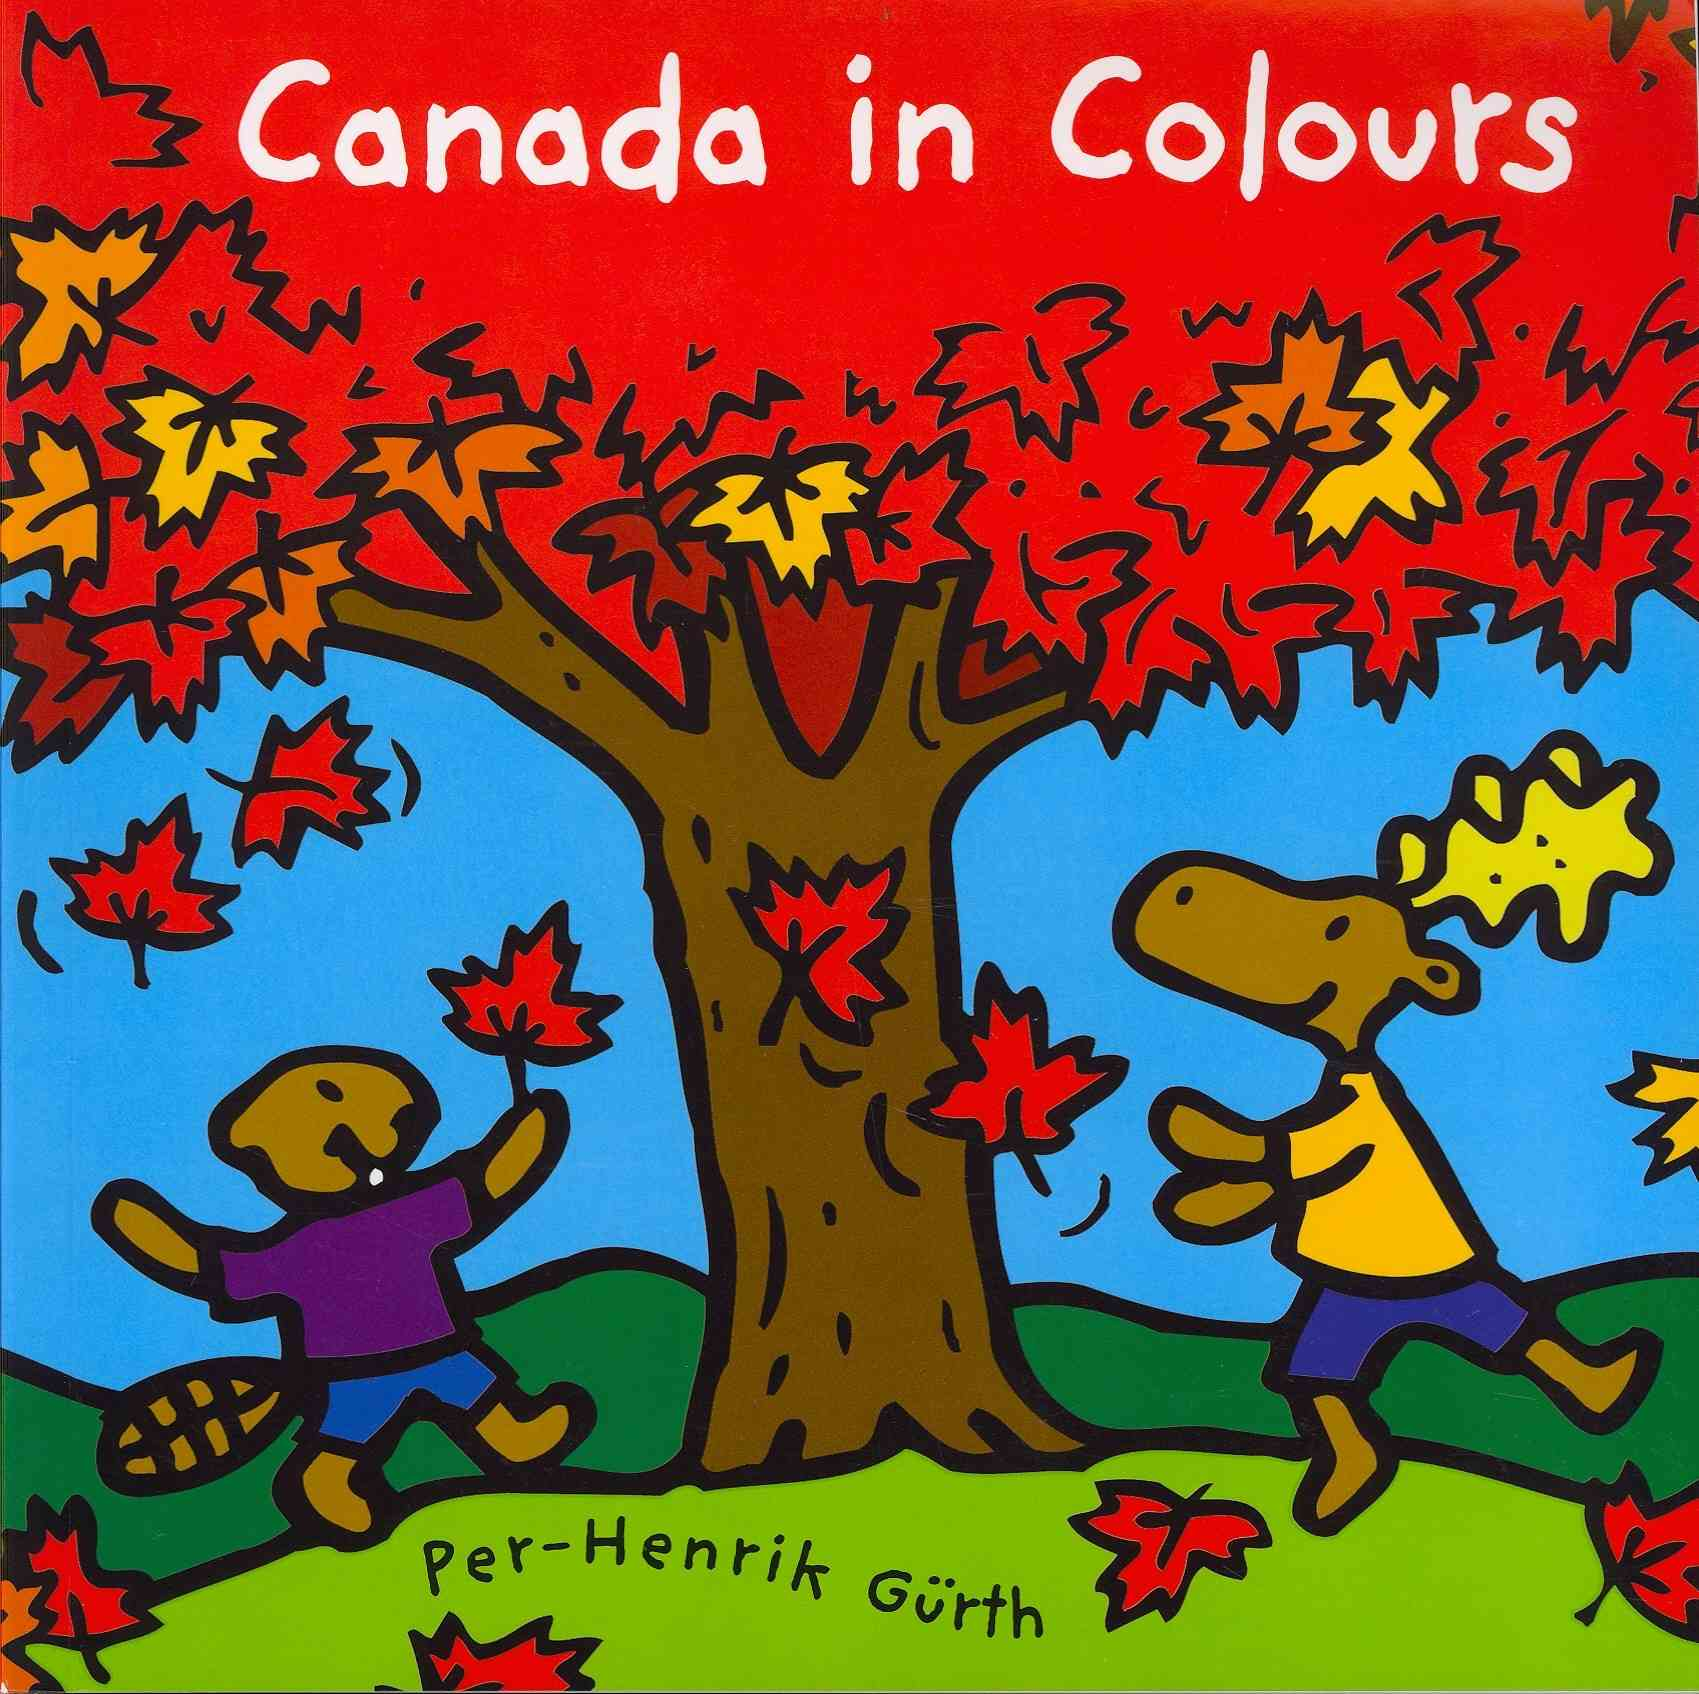 Canada in Colours By Gnrth, Per-henrik/ Gnrth, Per-henrik (ILT)